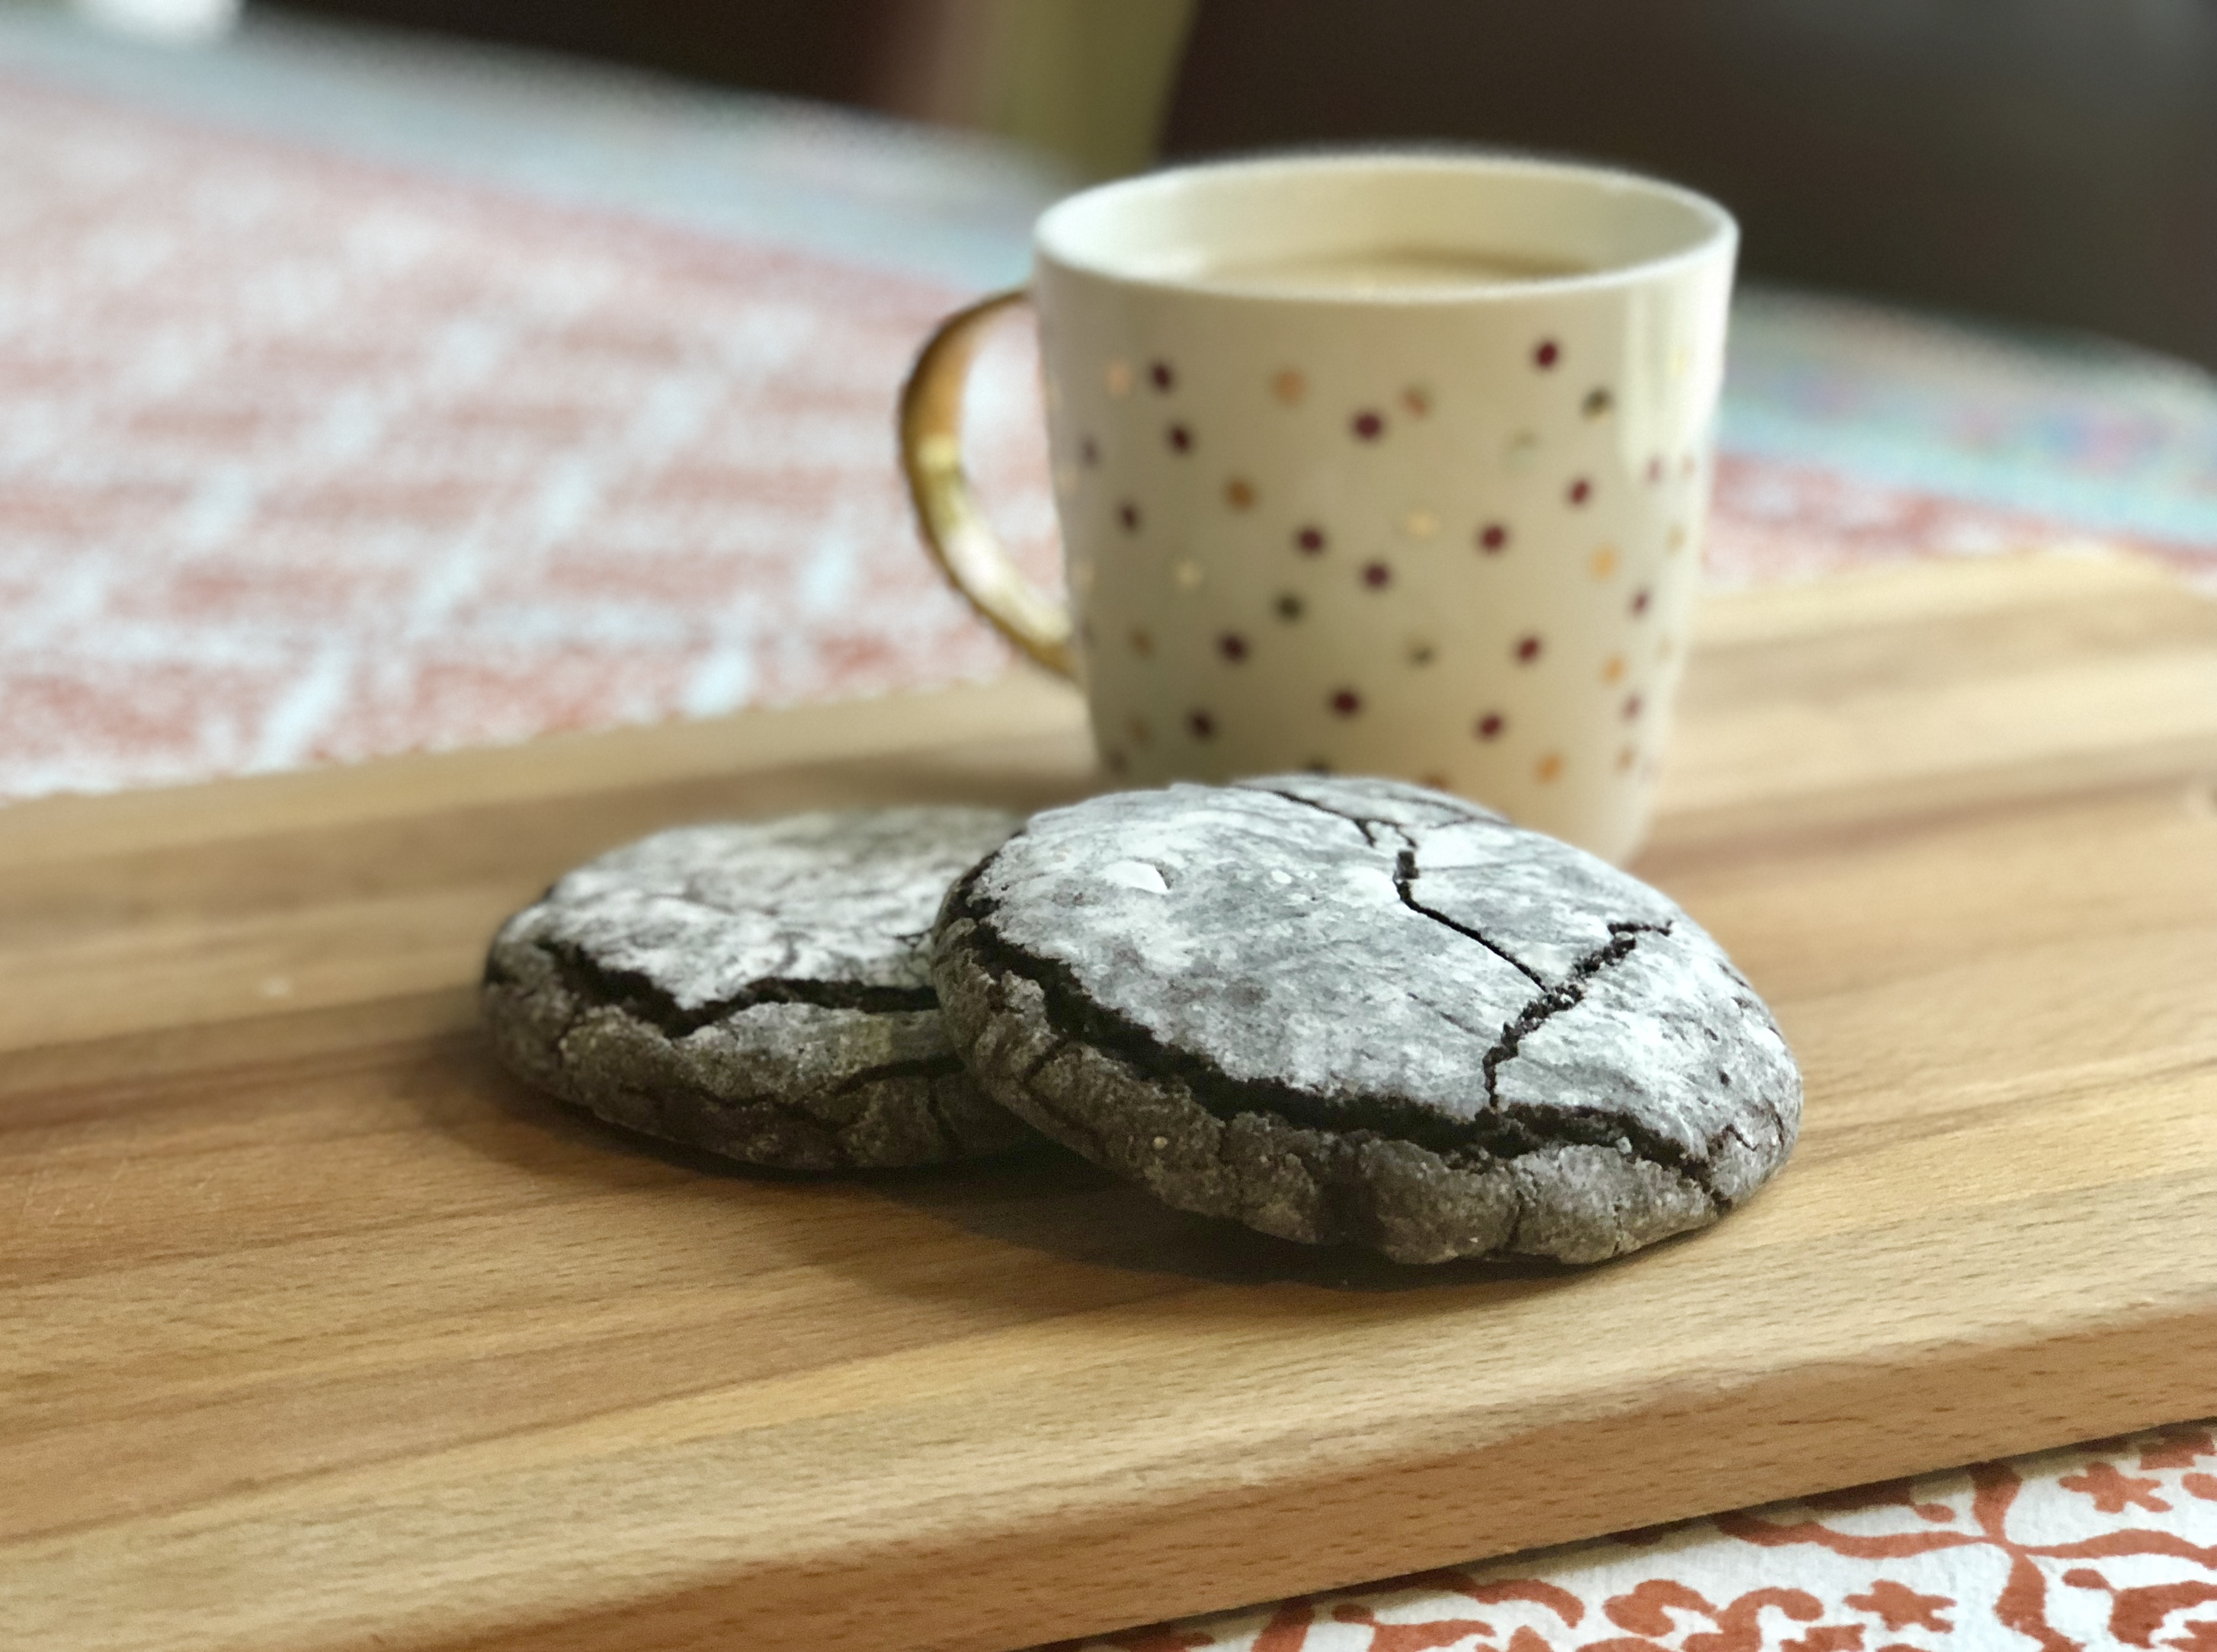 These vegan crinkles are rich and chocolaty, staying true to the original recipe that calls for eggs.